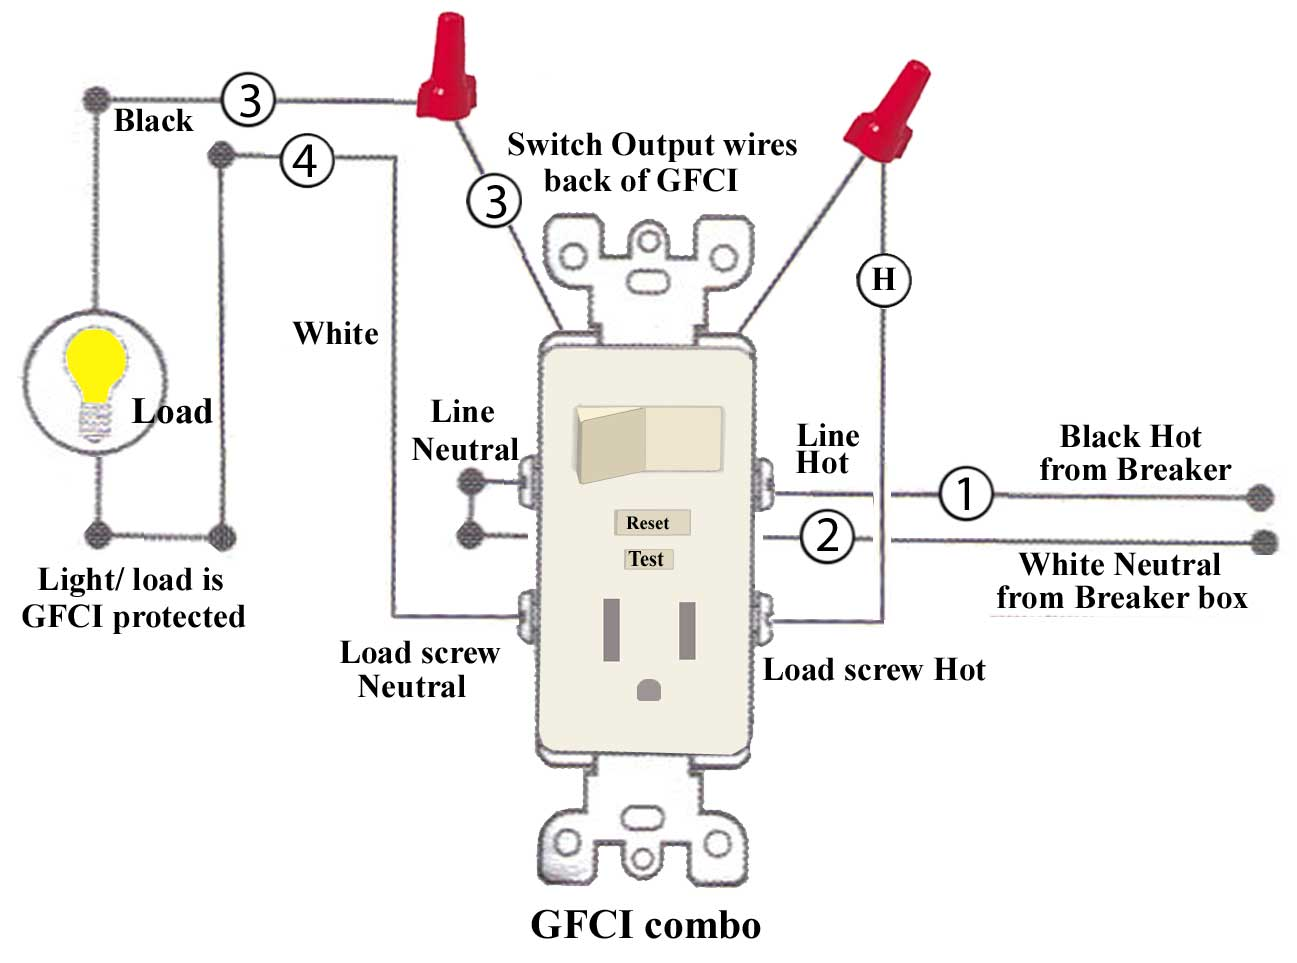 GFCI combo wiring update how to install and troubleshoot gfci gfci switch combo wiring diagram at cos-gaming.co